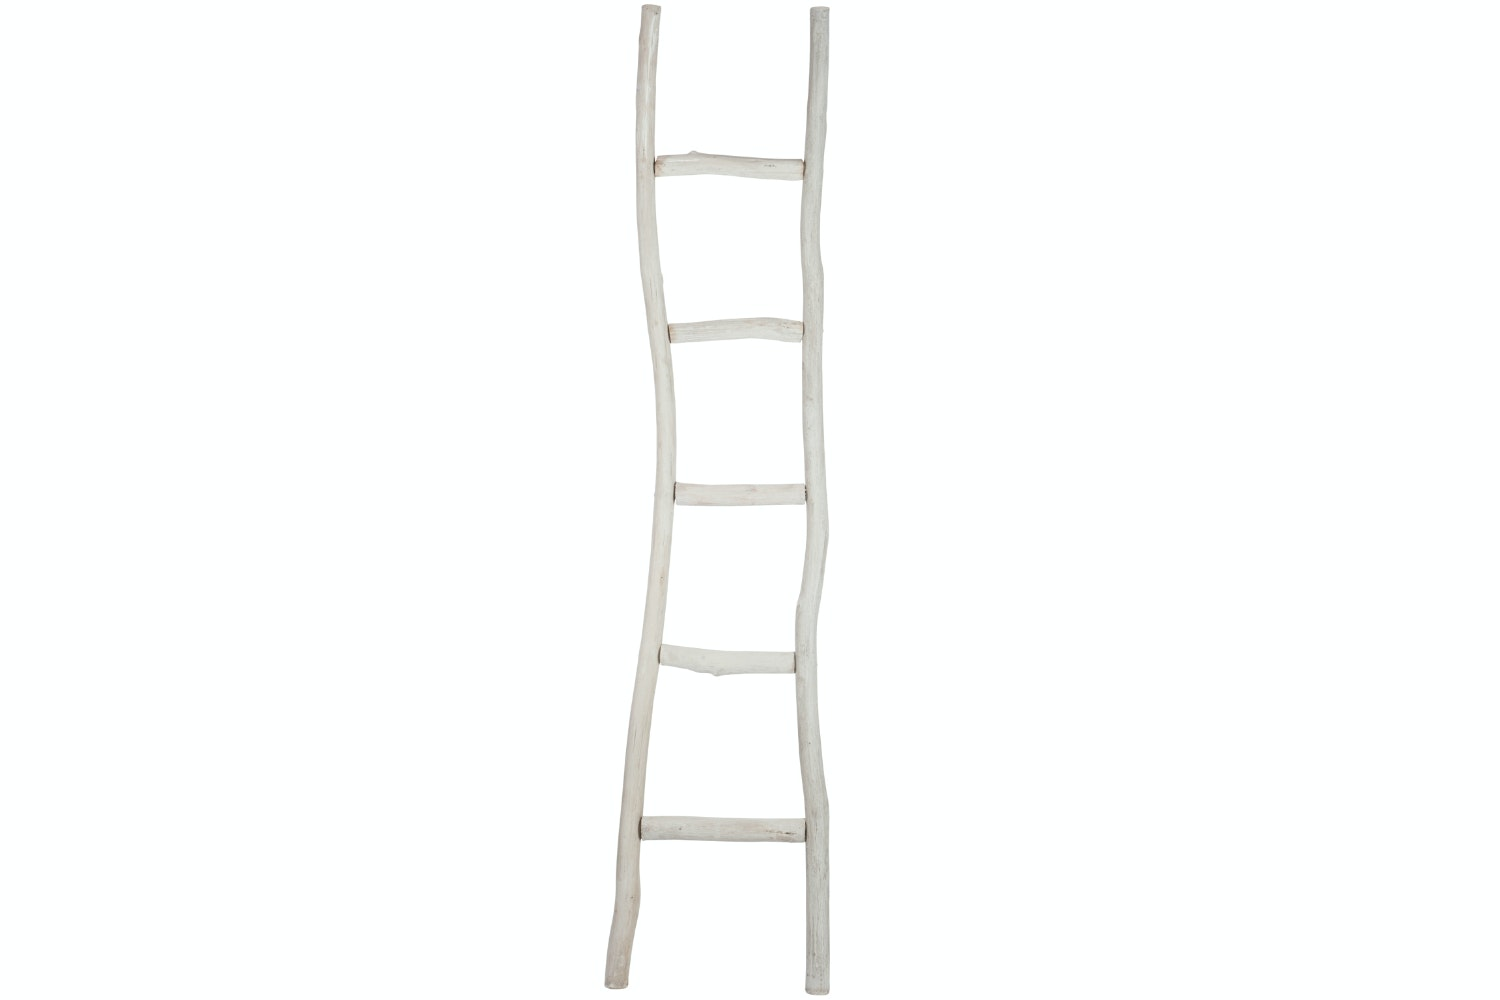 5 Rung Rough Ladder